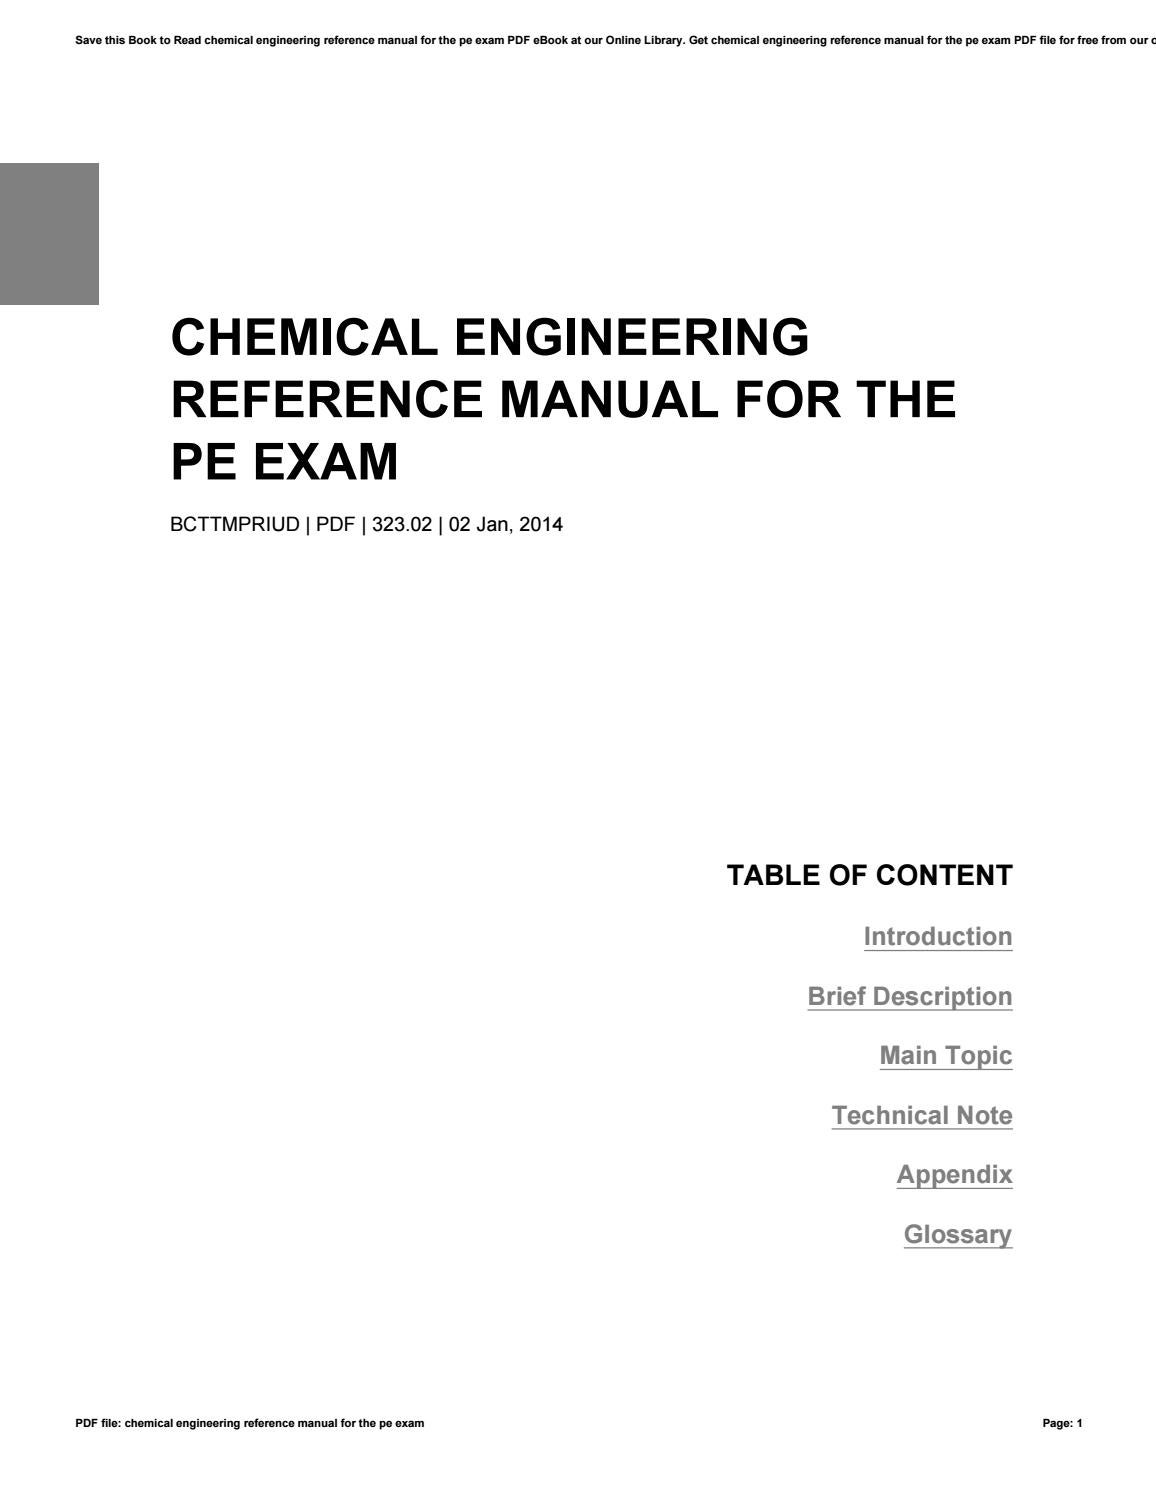 civil engineering reference manual 13th edition